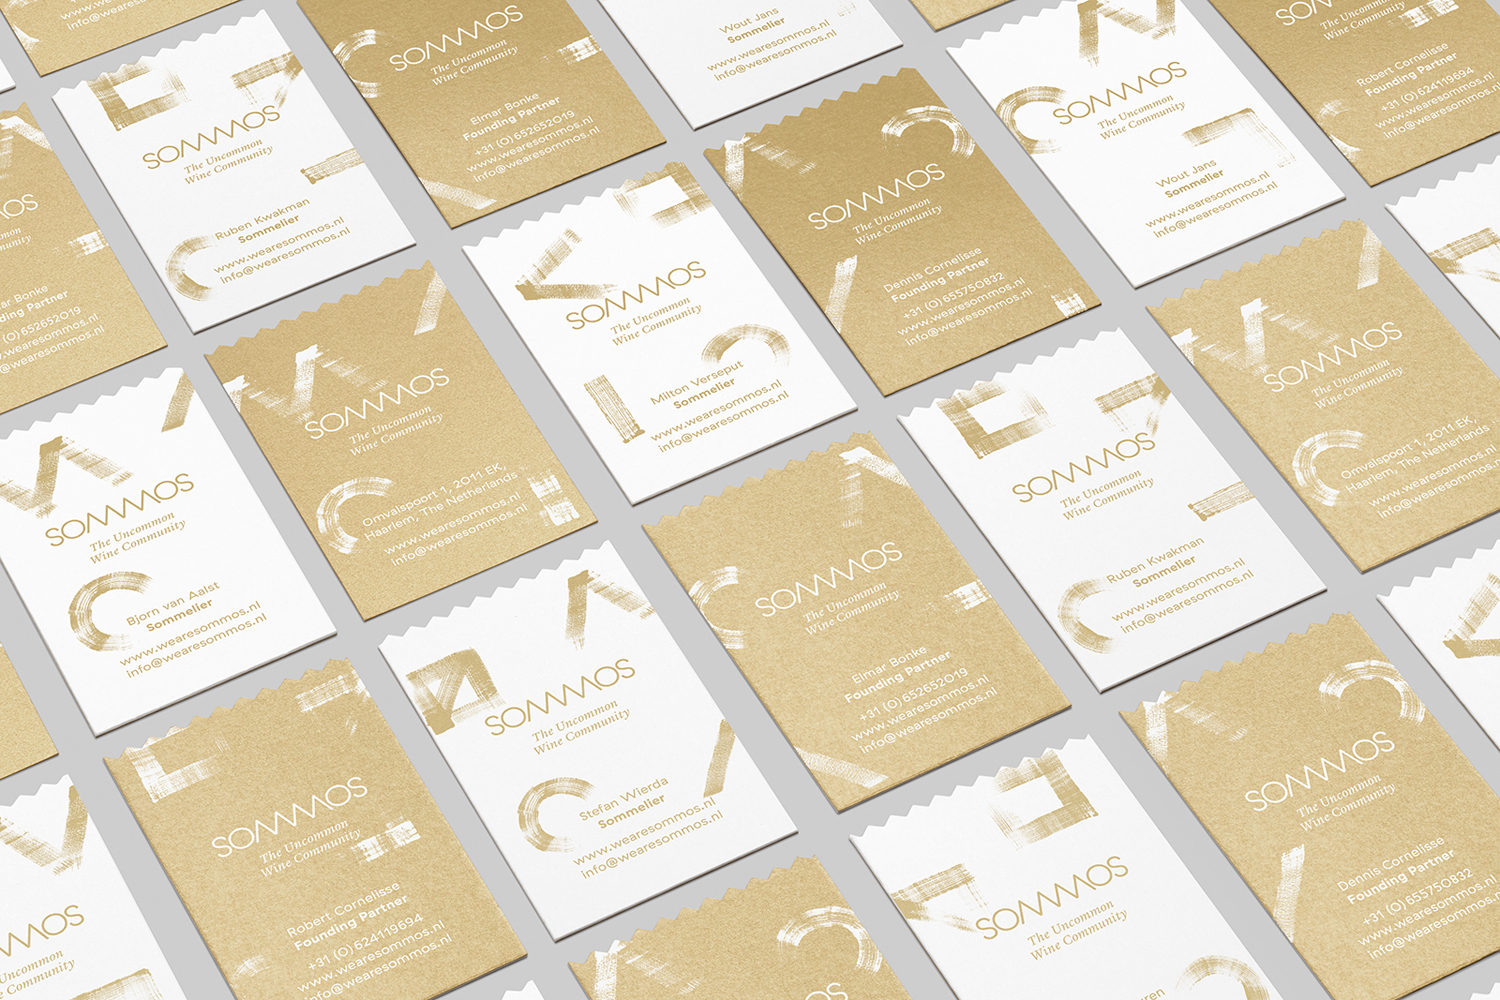 Branding and business cards with gold ink detail by Mucho for Dutch online wine subscription service Sommos